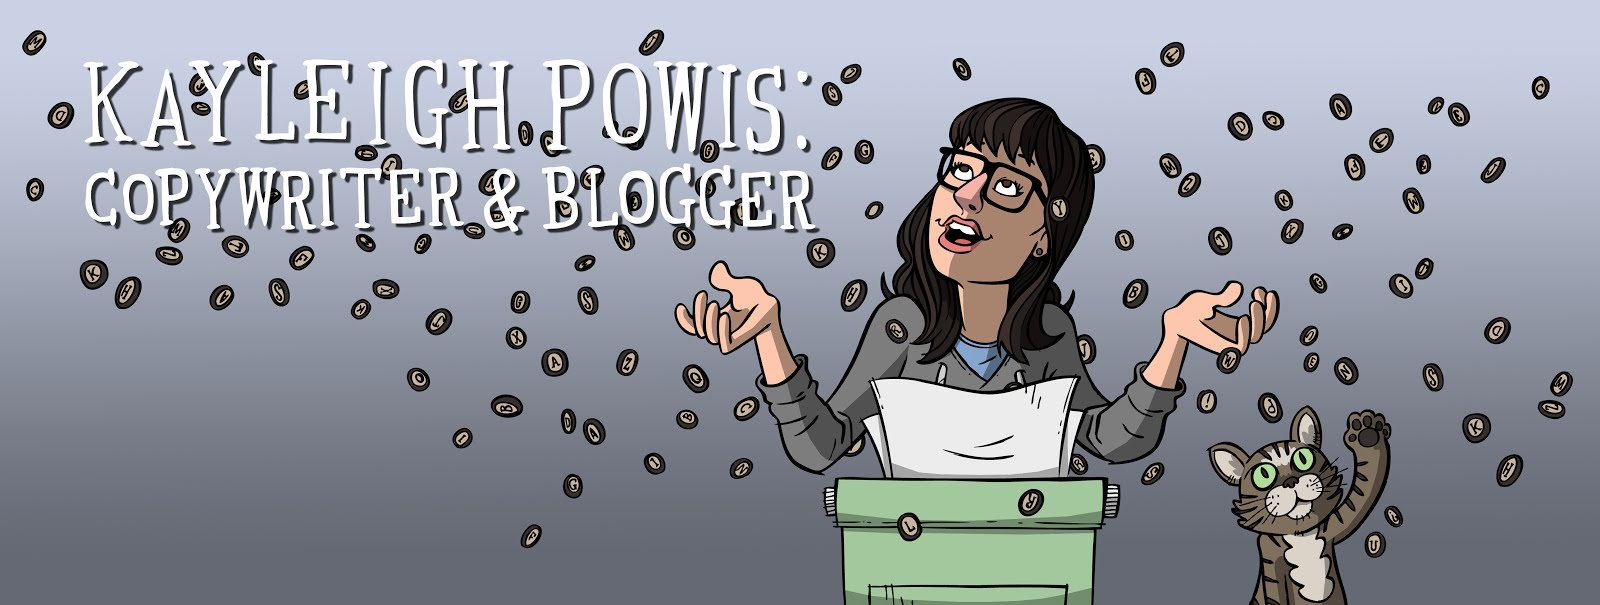 Kayleigh Powis - Copywriter and Blogger